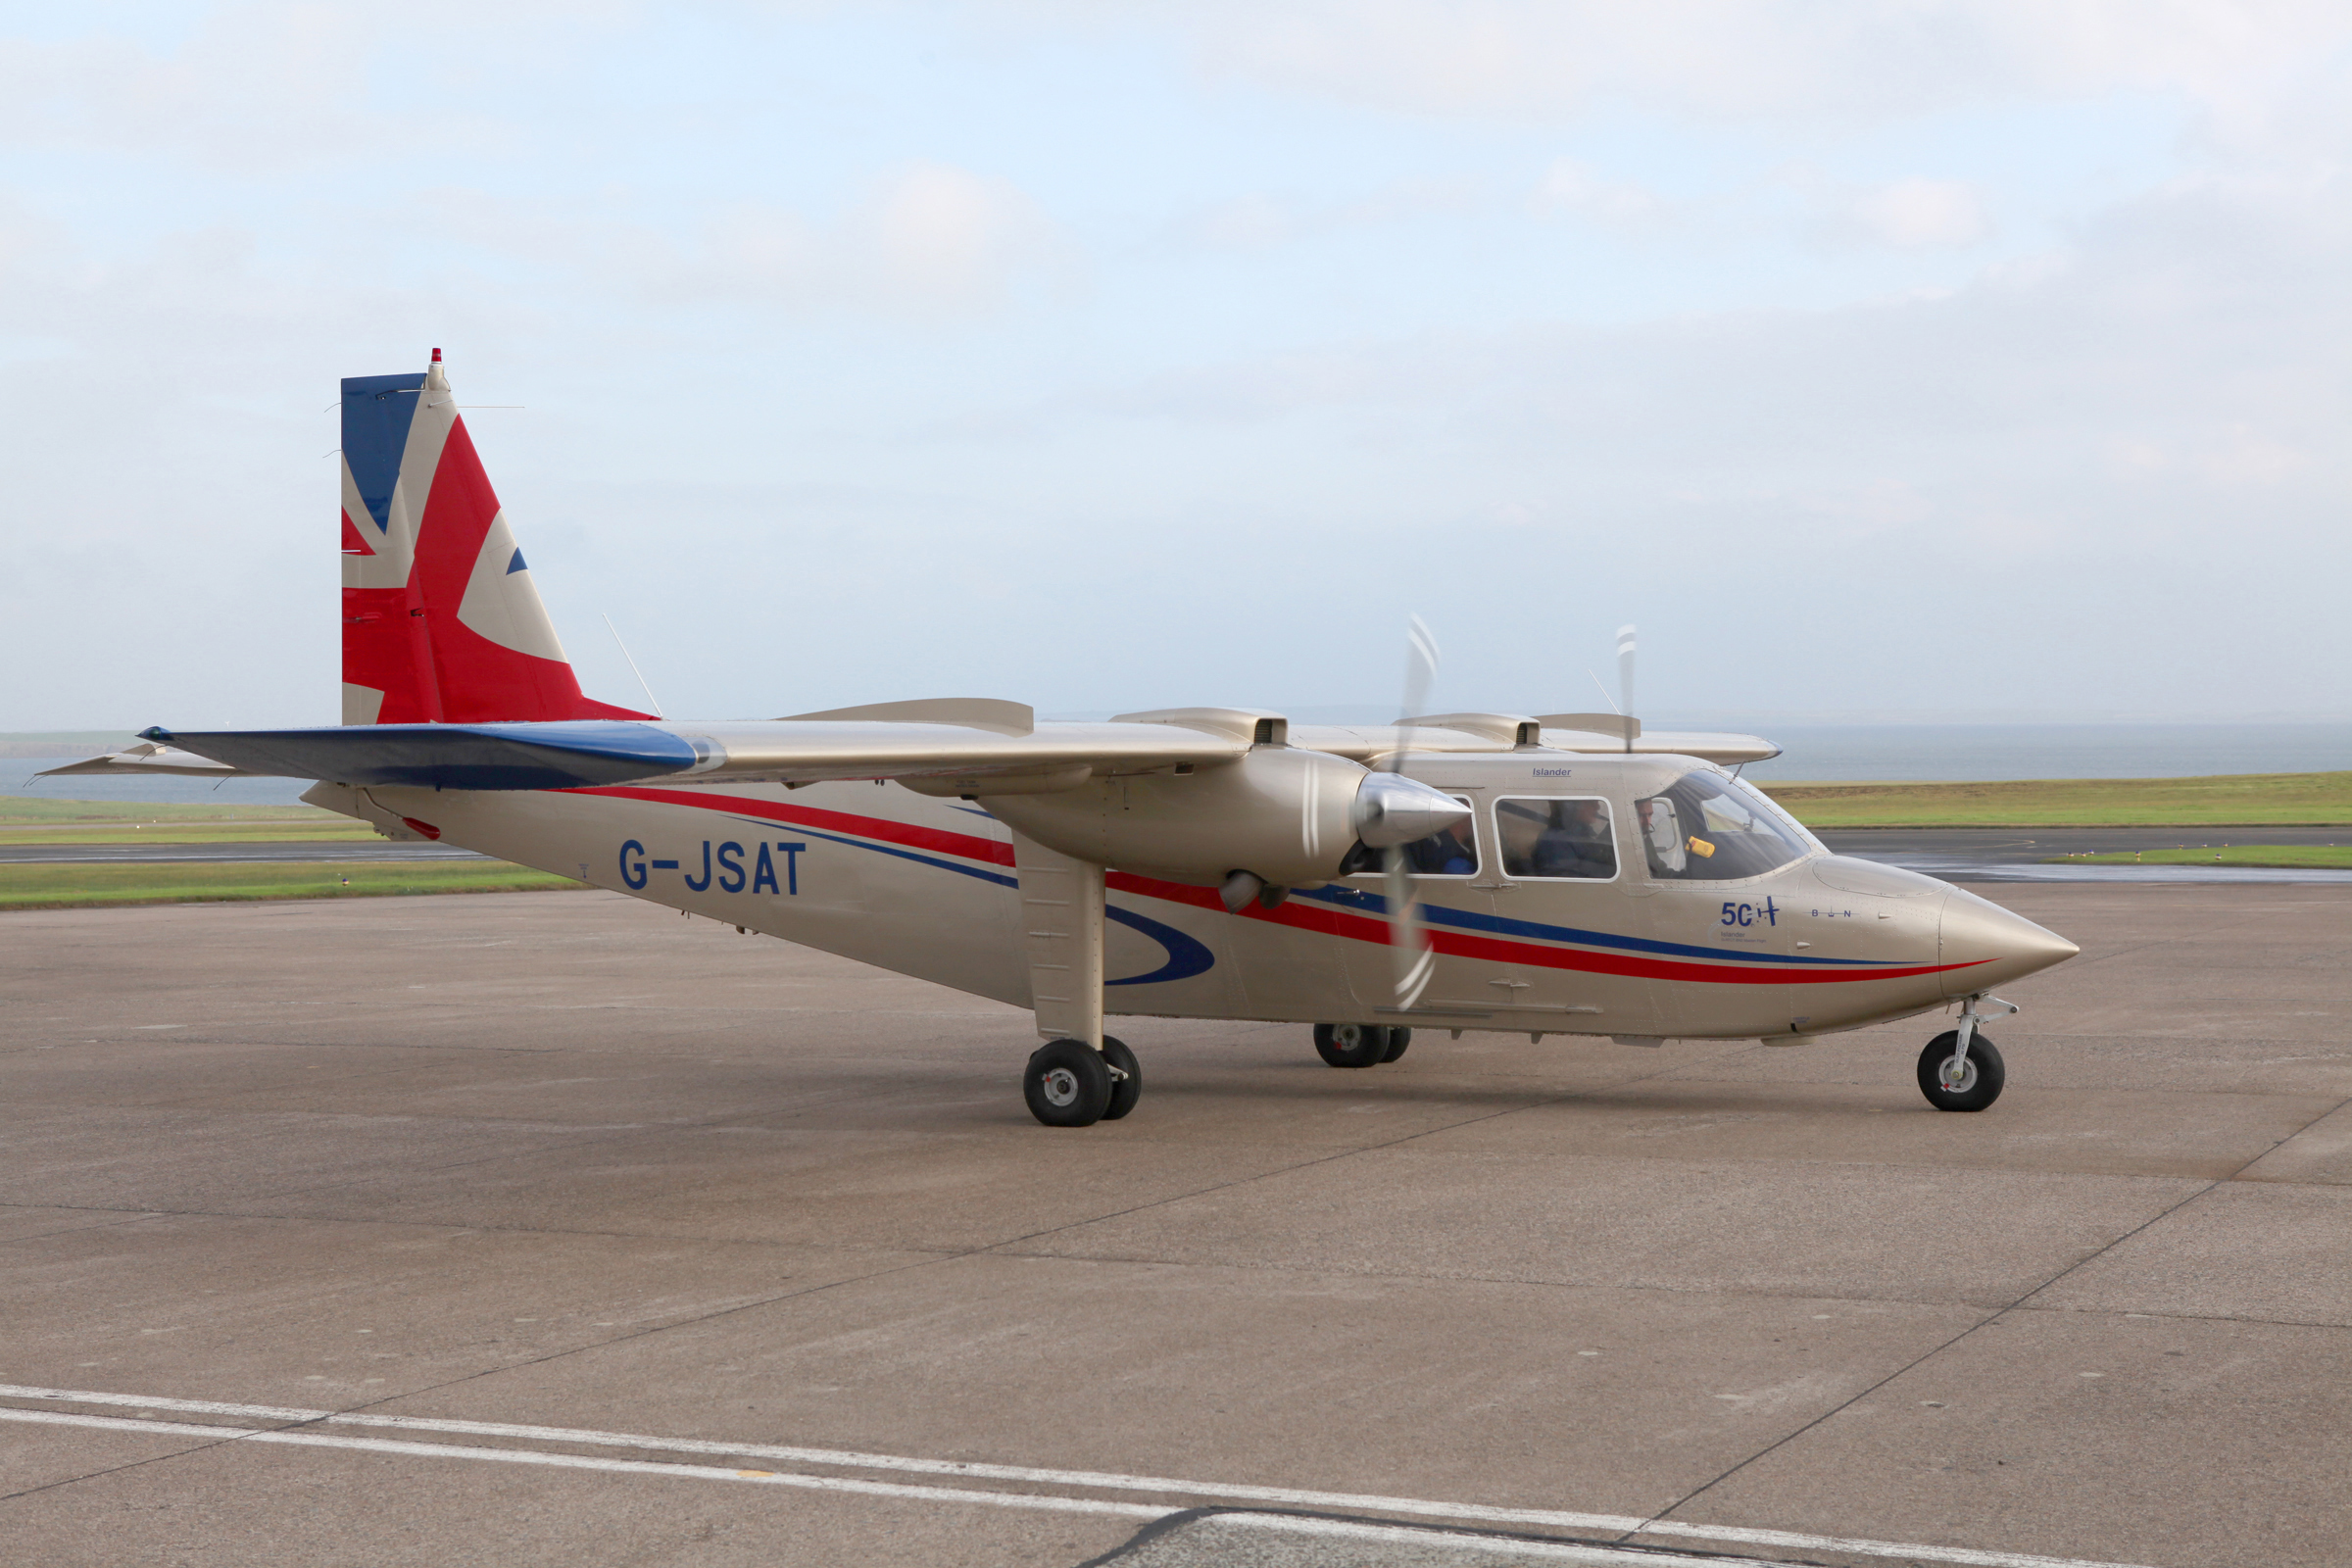 To mark the 50th anniversary of Loganair a gold islander aircraft by Britten-Norman took flight